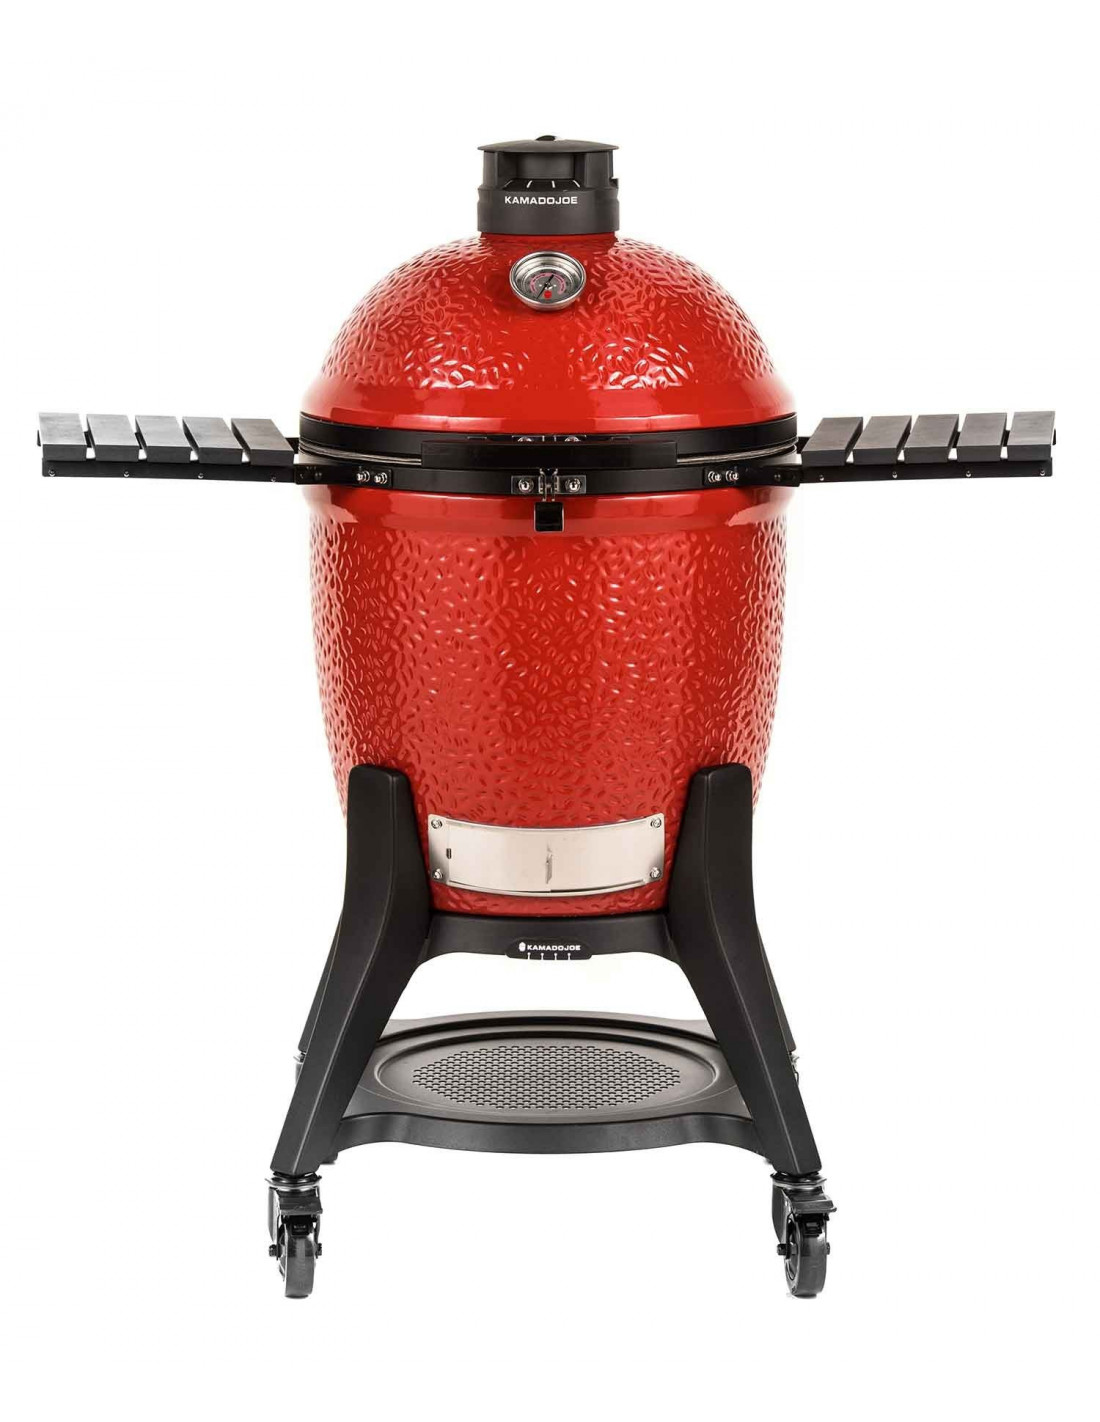 Barbecue Kamado Joe Classic Joe 3